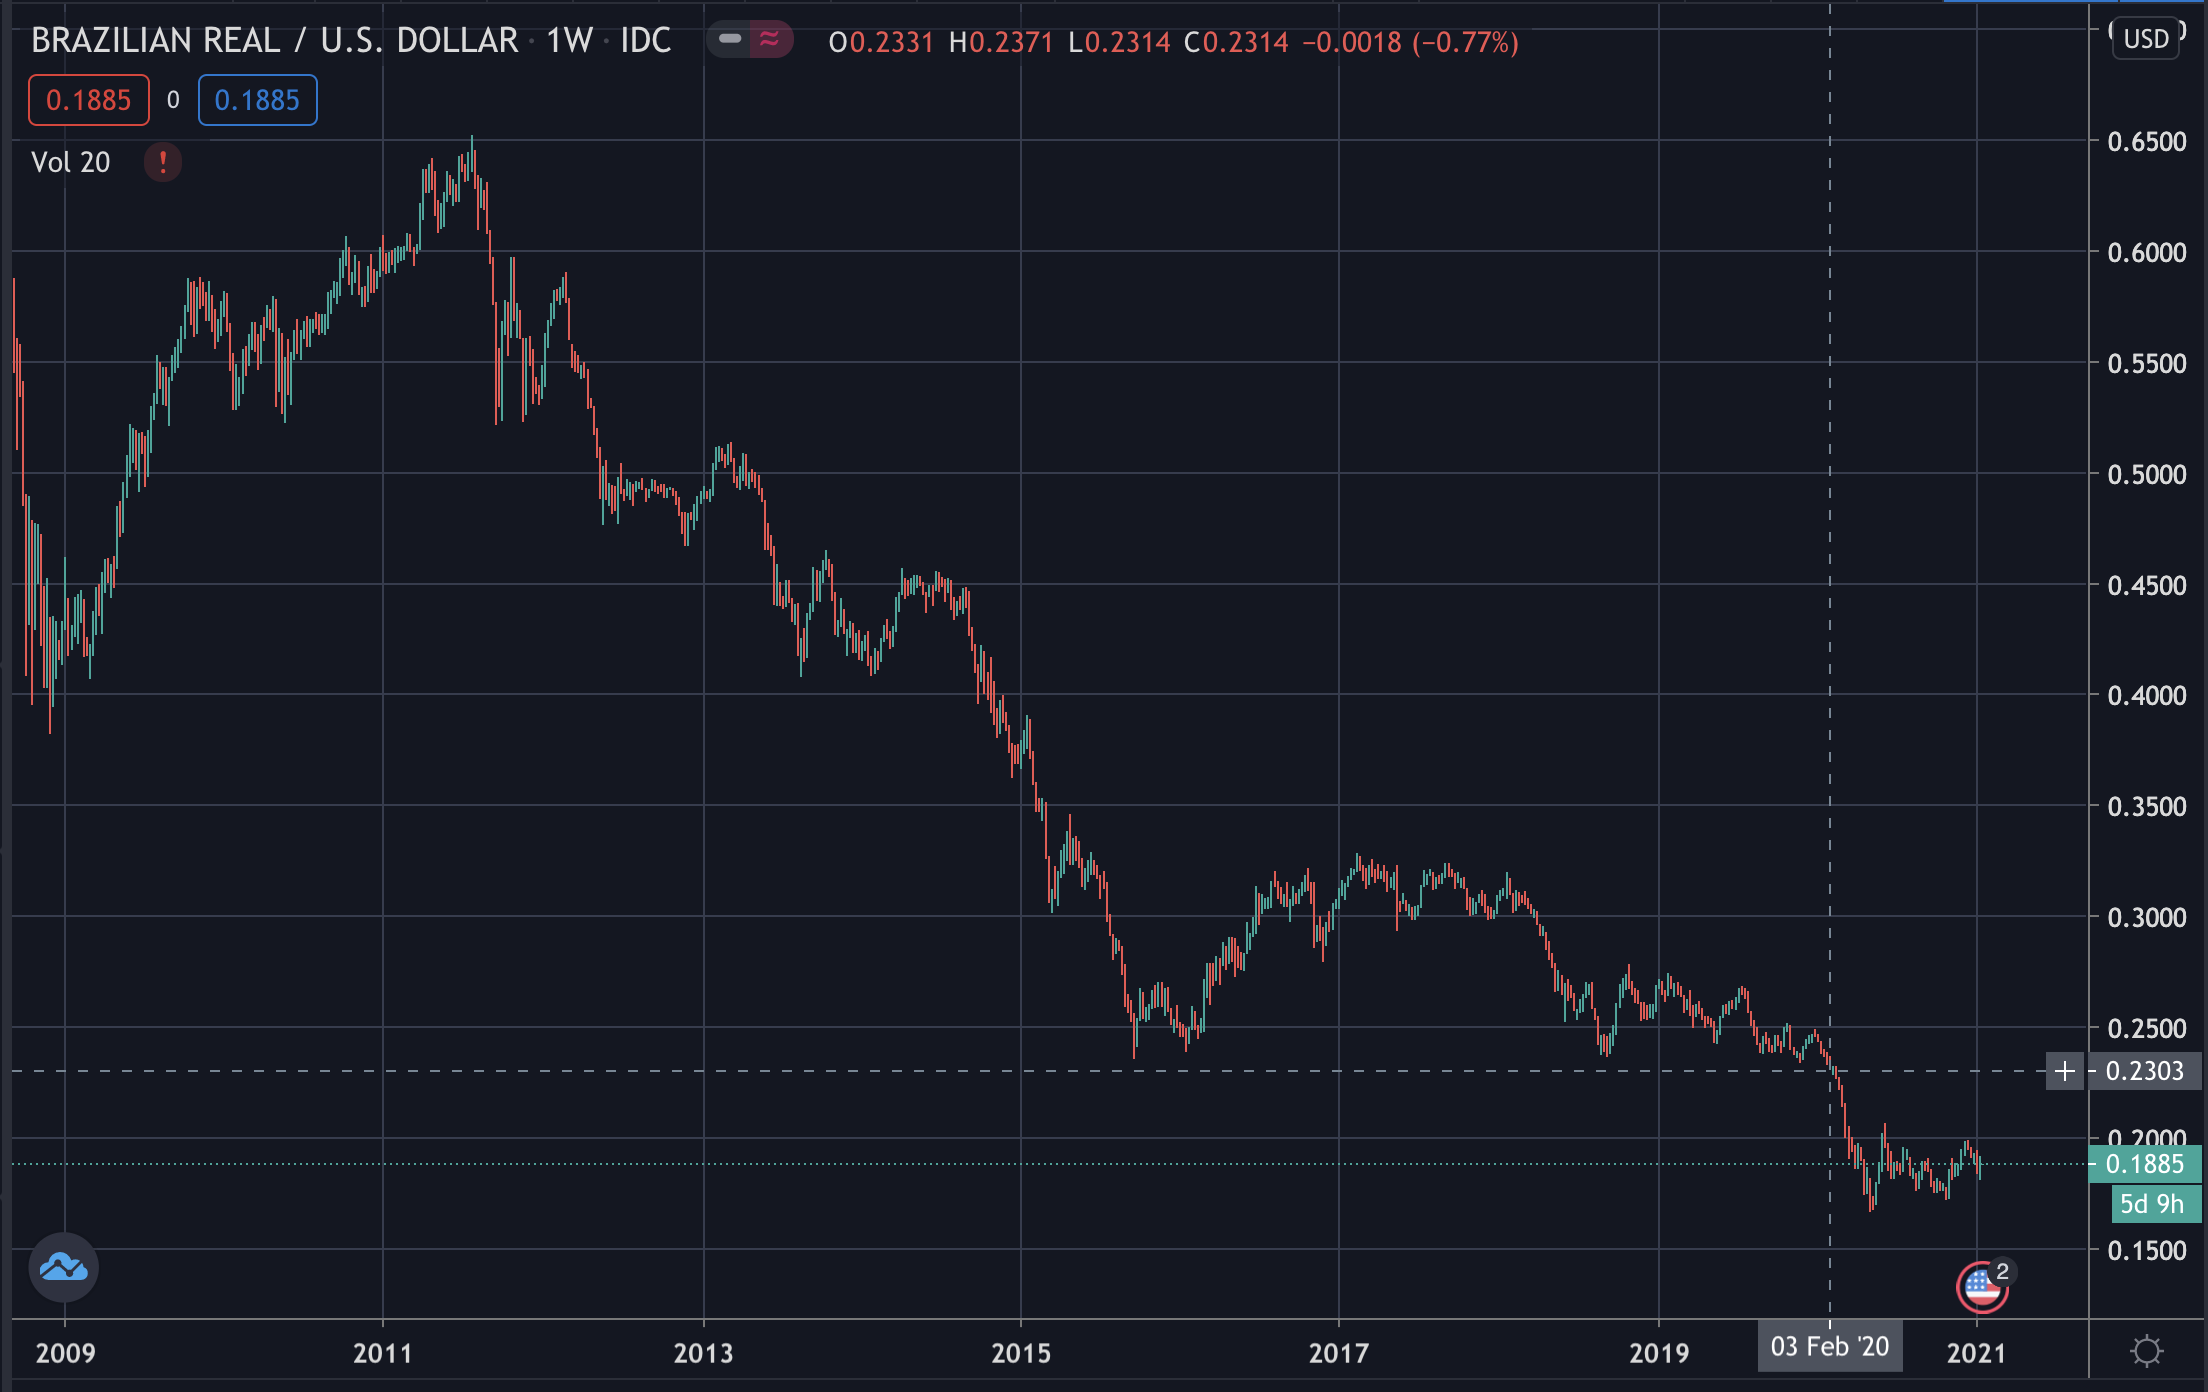 Brazilian Real / US Dollar, Jan 2021